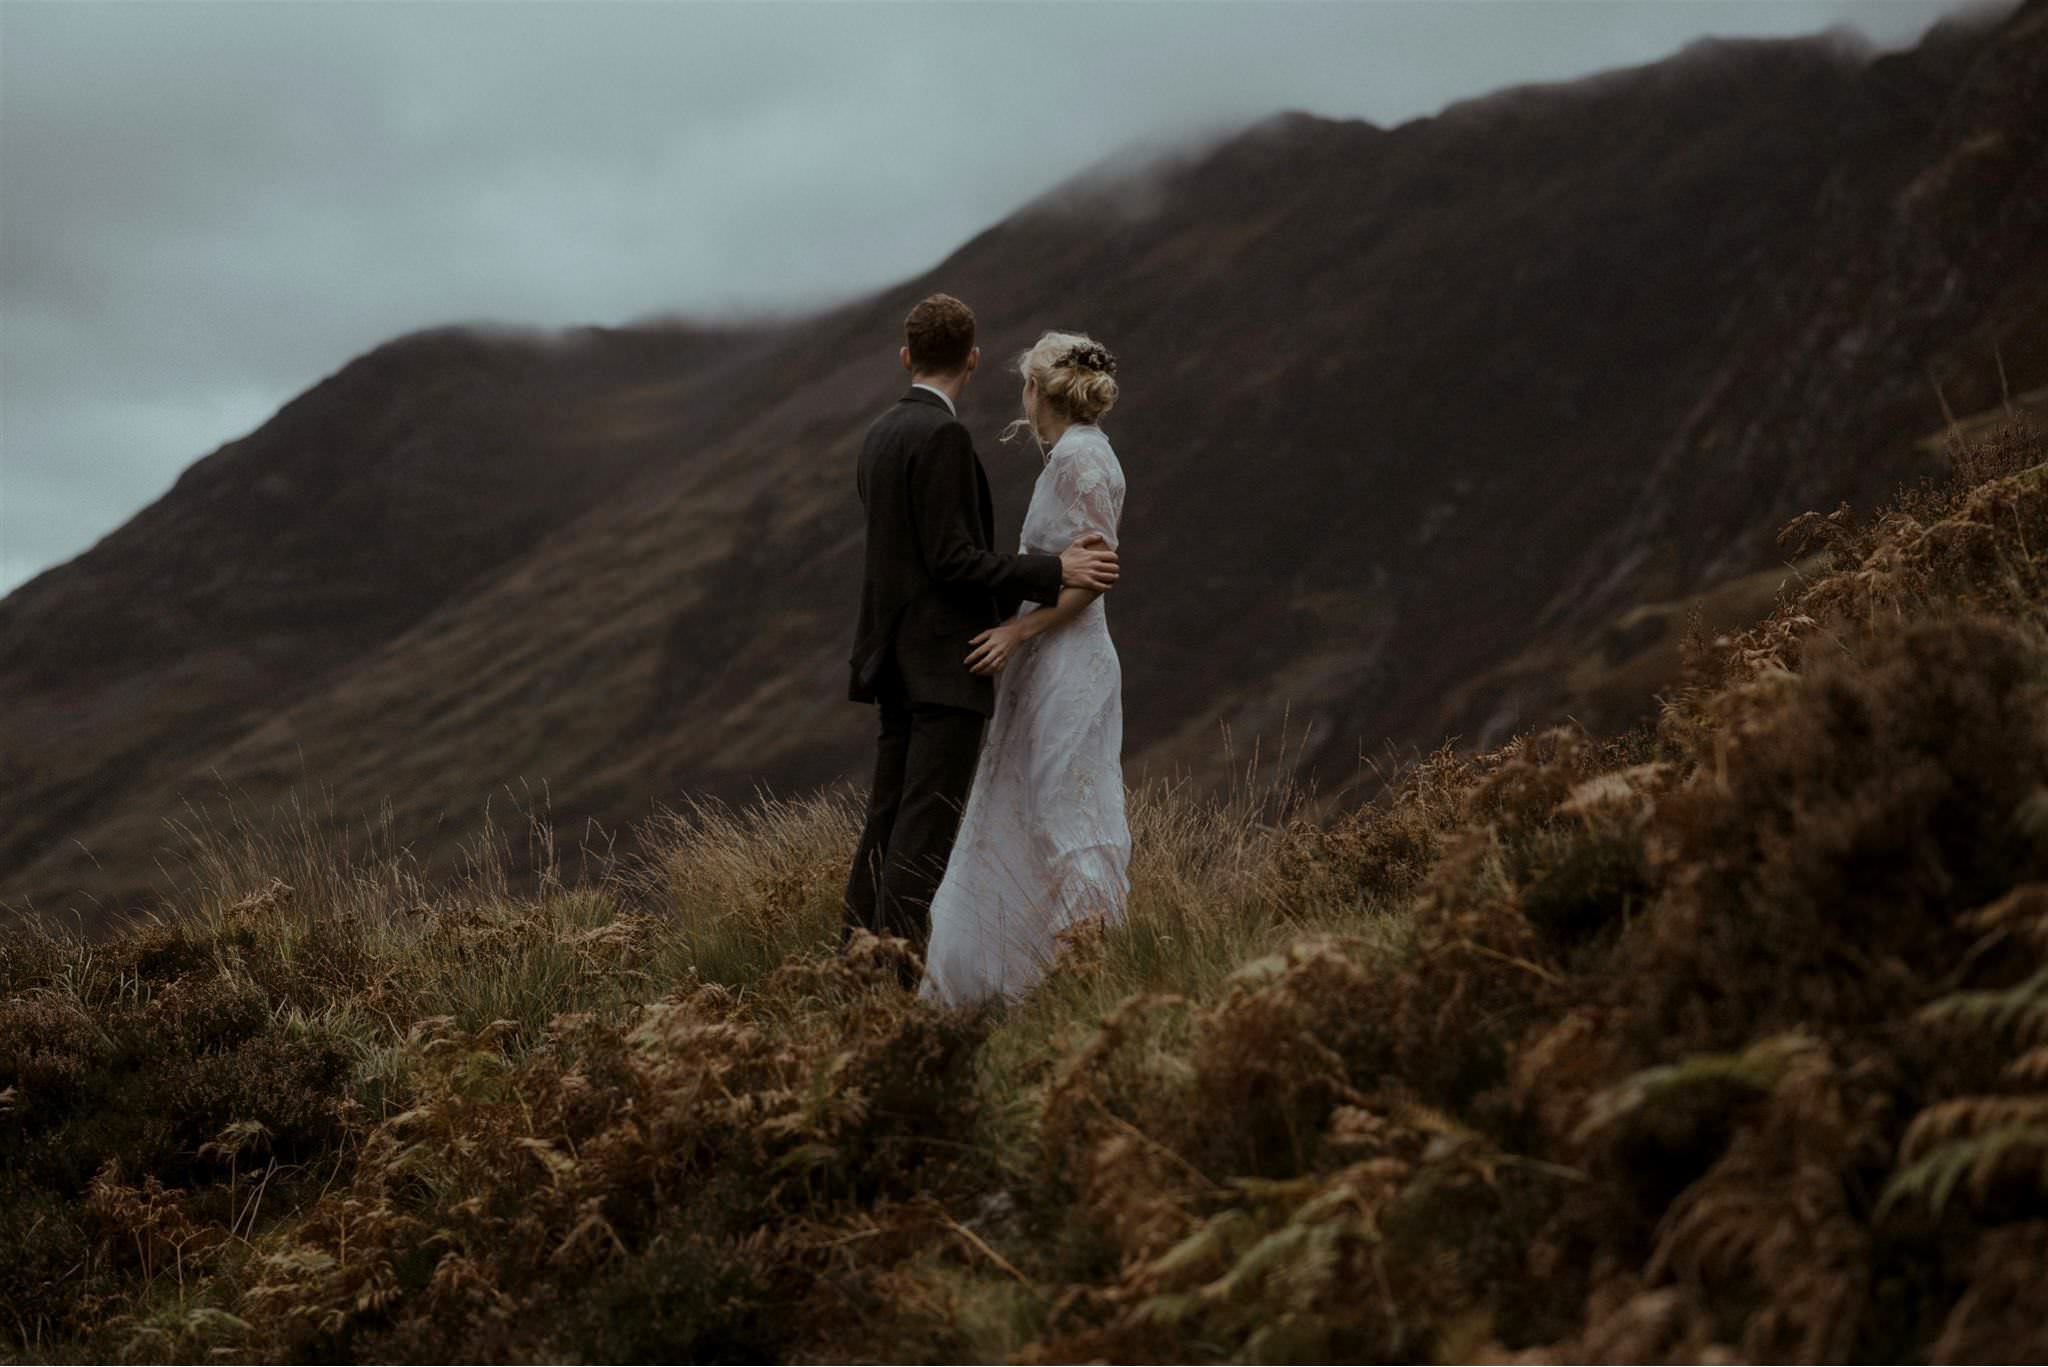 Bride and groom at their Scotland elopement in Glencoe Scottish Highlands